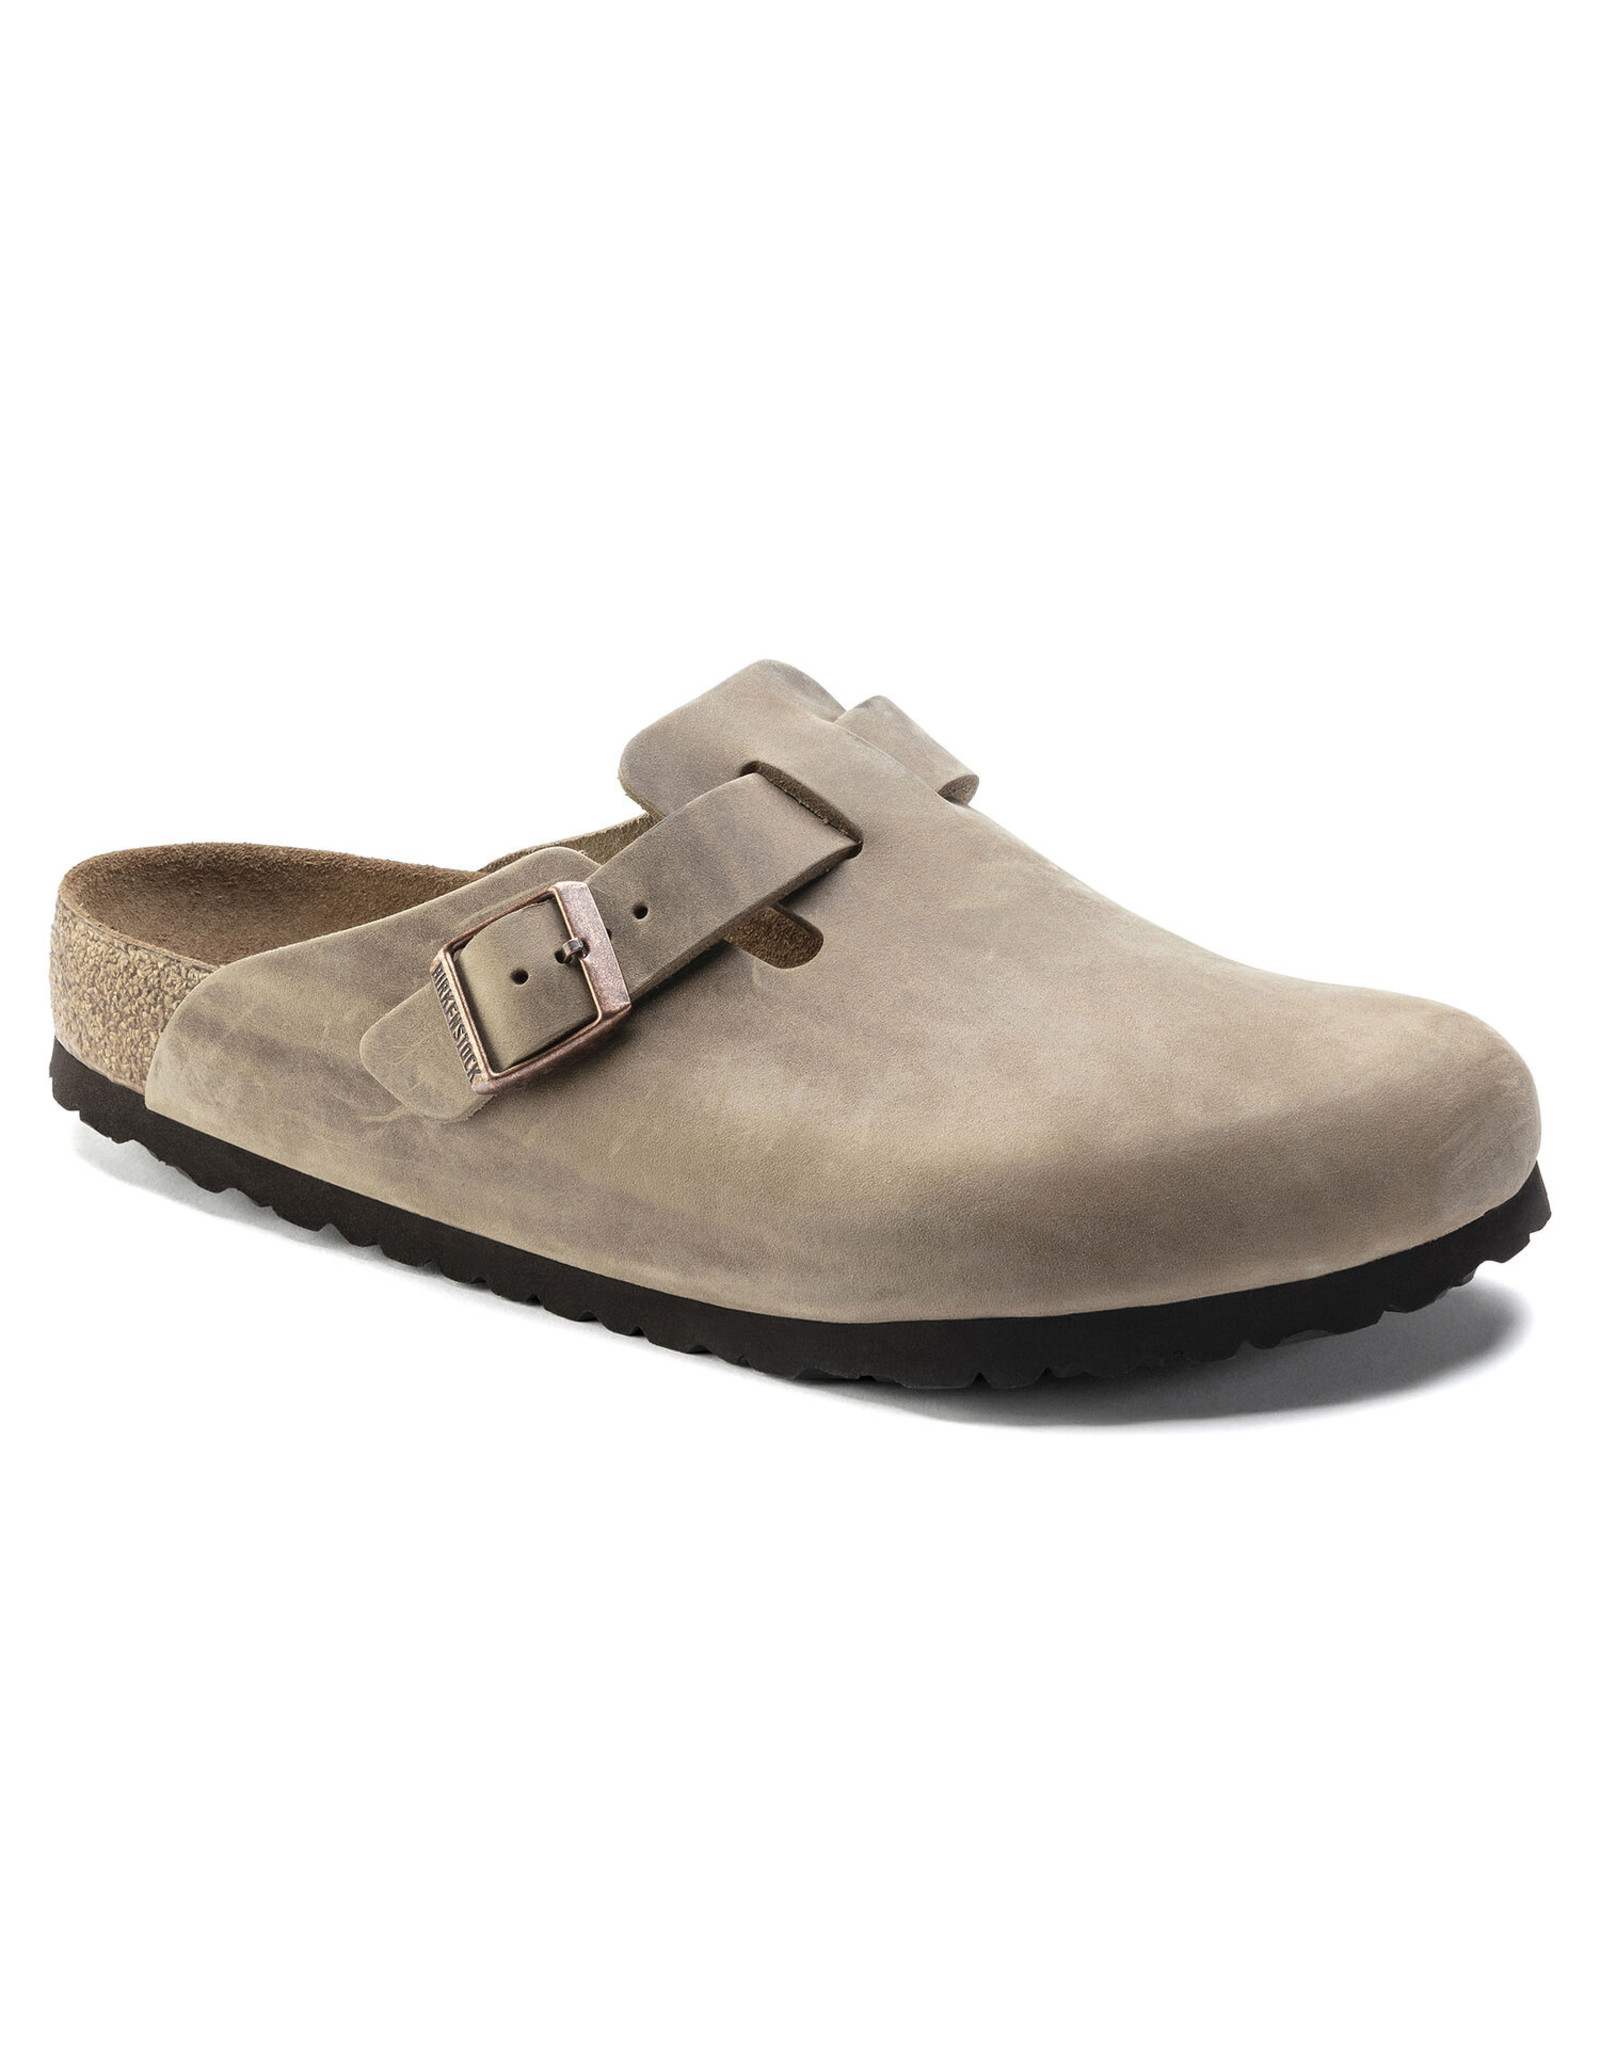 BIRKENSTOCK BOSTON SOFT FOOTBED OILED LEATHER-TOBACCO BROWN